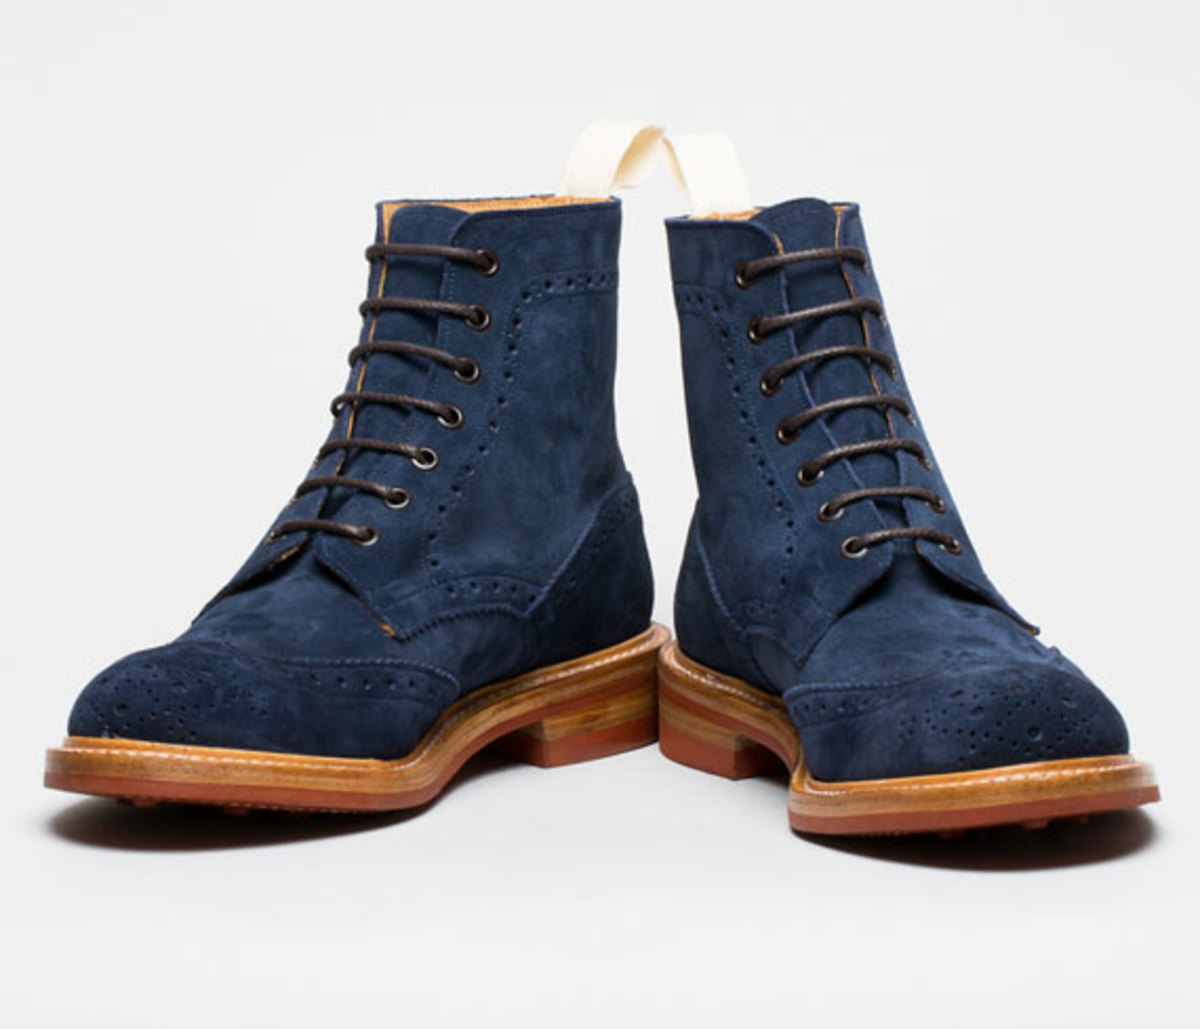 norse-projects-trickers-repello-brogue-boots-12